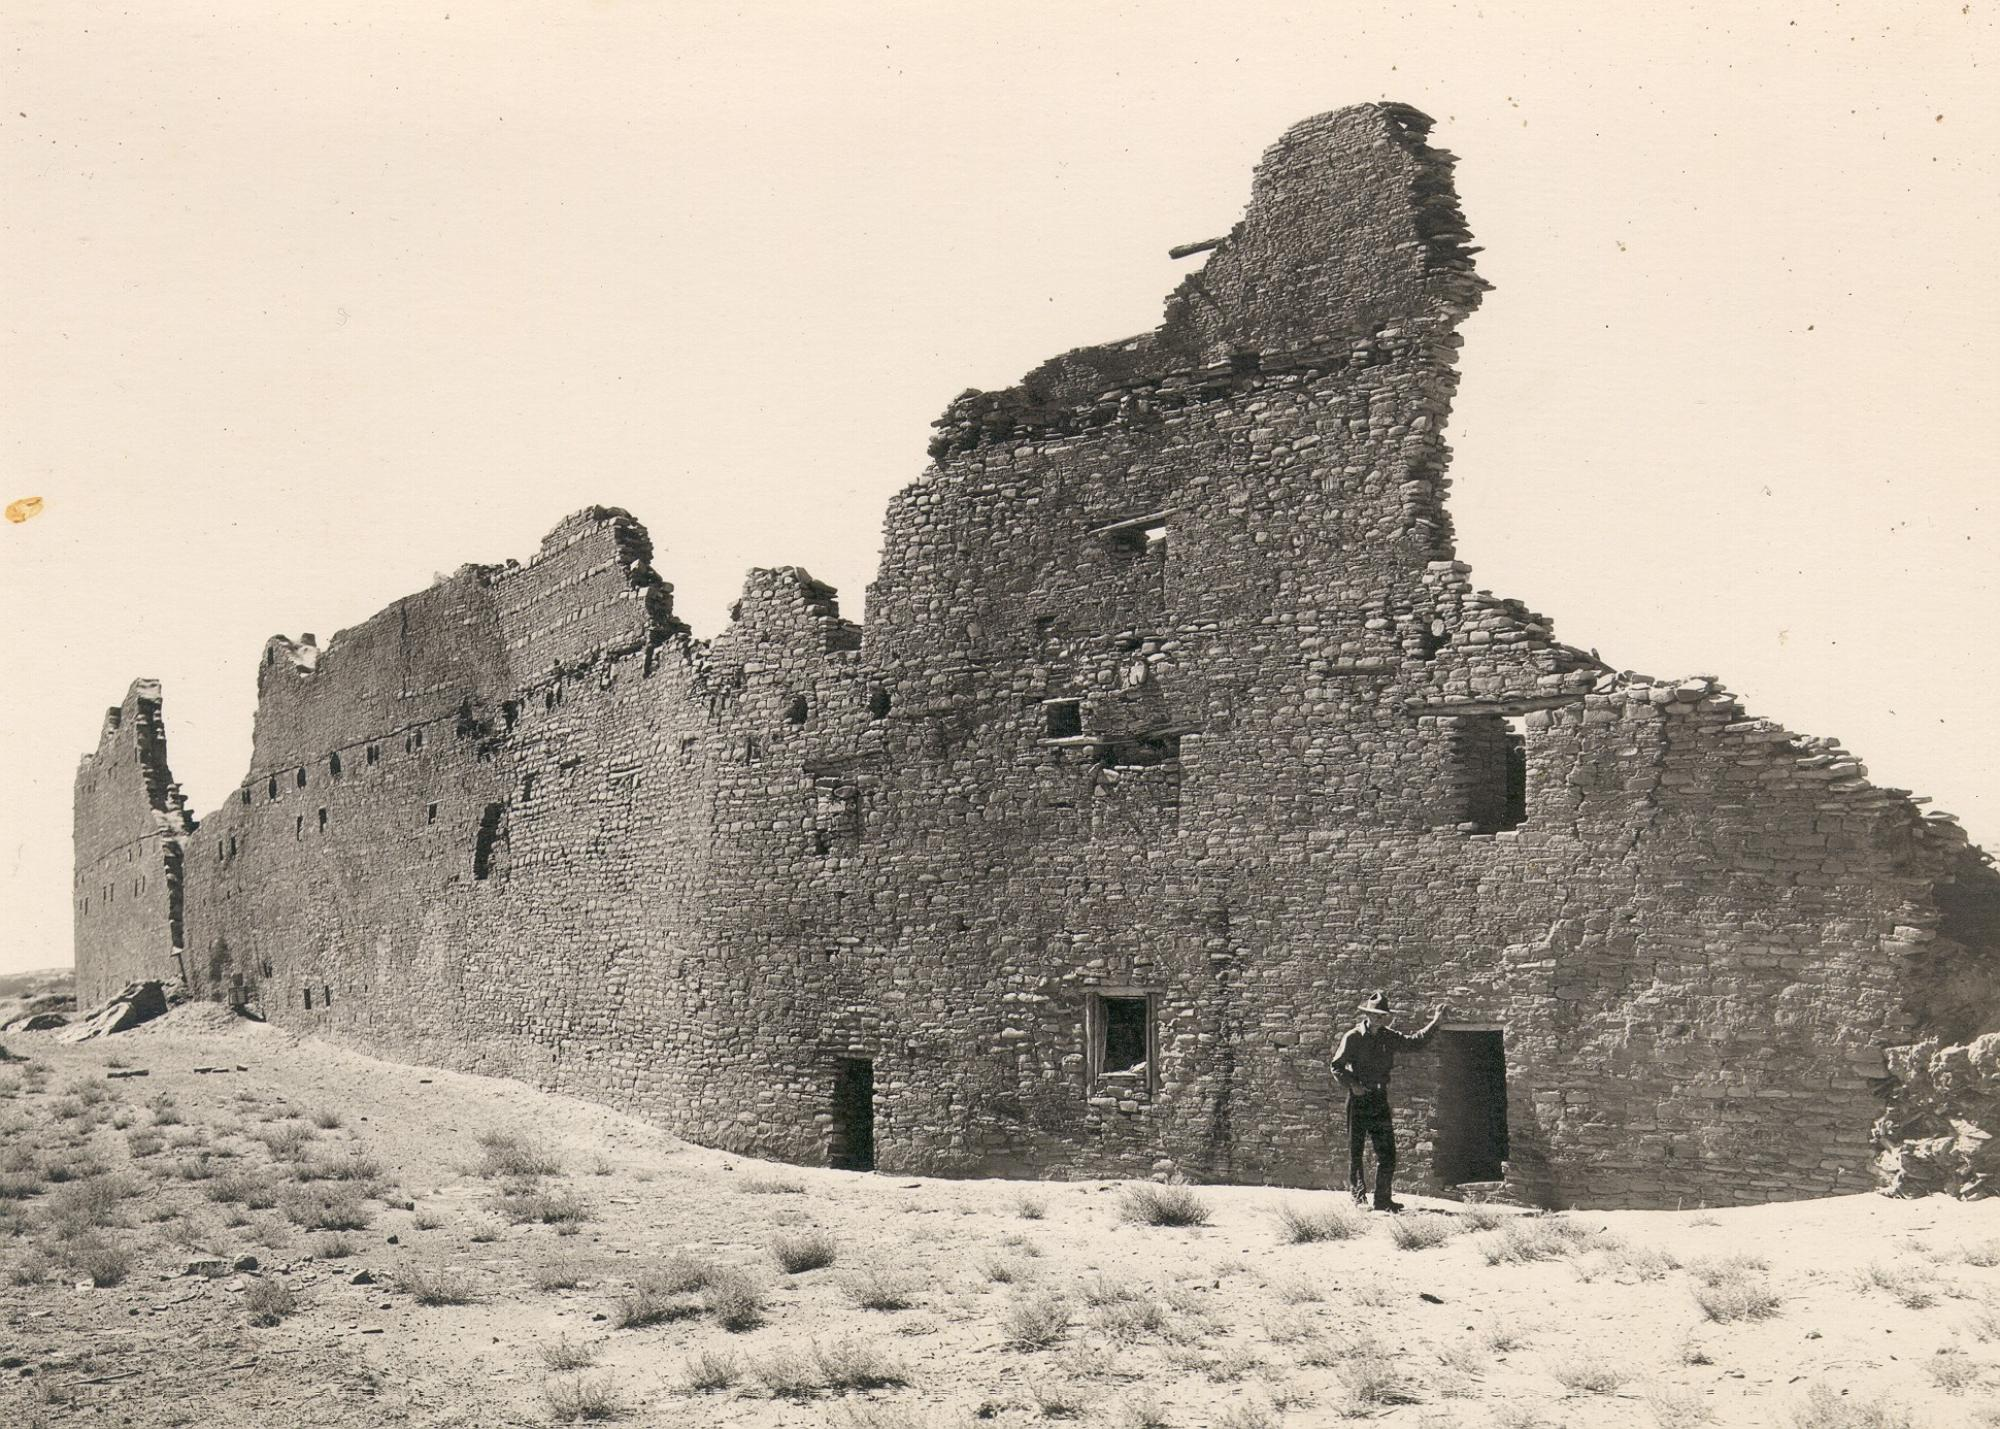 This photo from the 1930s shows the back wall of Pueblo Bonito, the largest structure found in Chaco Canyon, New Mexico. Archaeologists estimate the intact structure was five stories high and had about 500 rooms. UA tree-ring studies of the building's woo